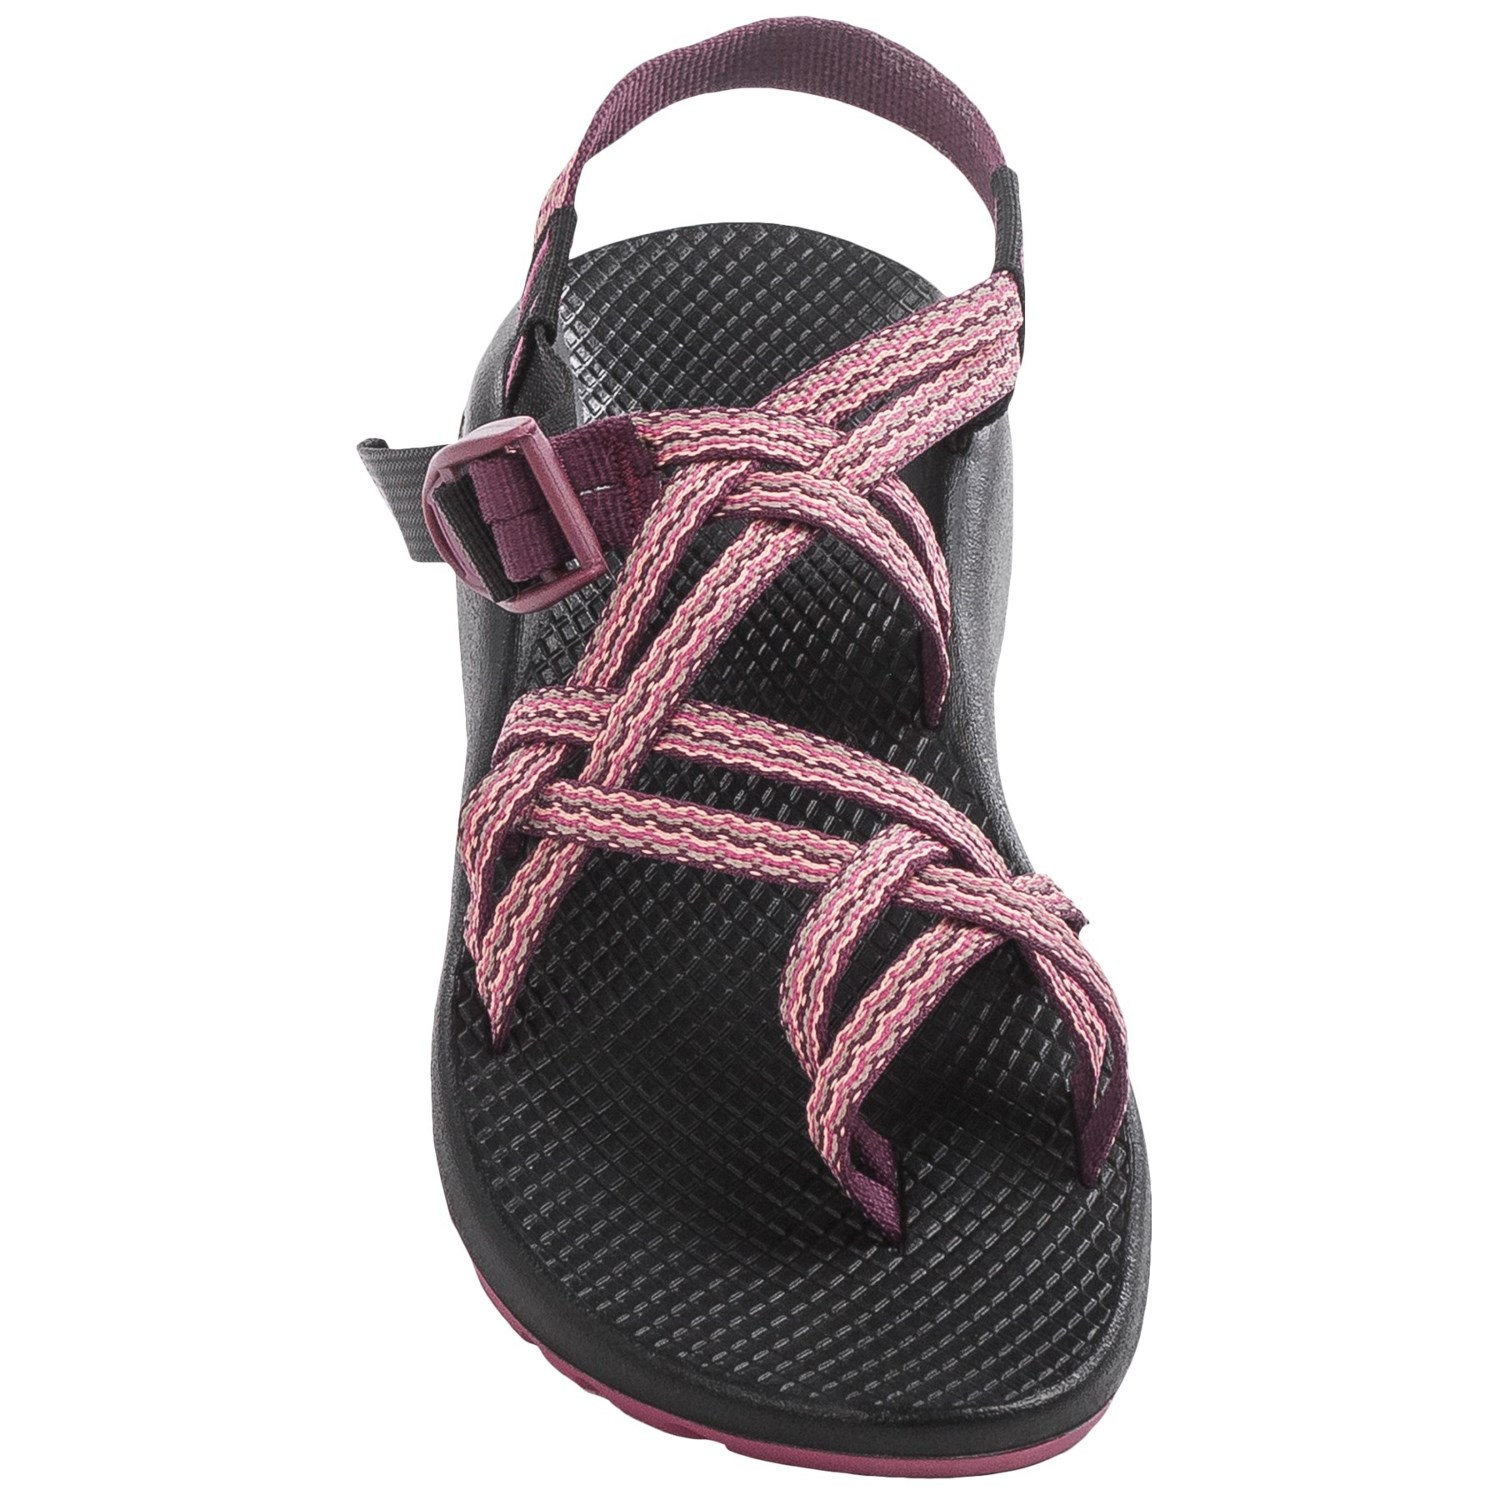 Chaco Zx 2 174 Classic Sport Sandals For Women Save 42